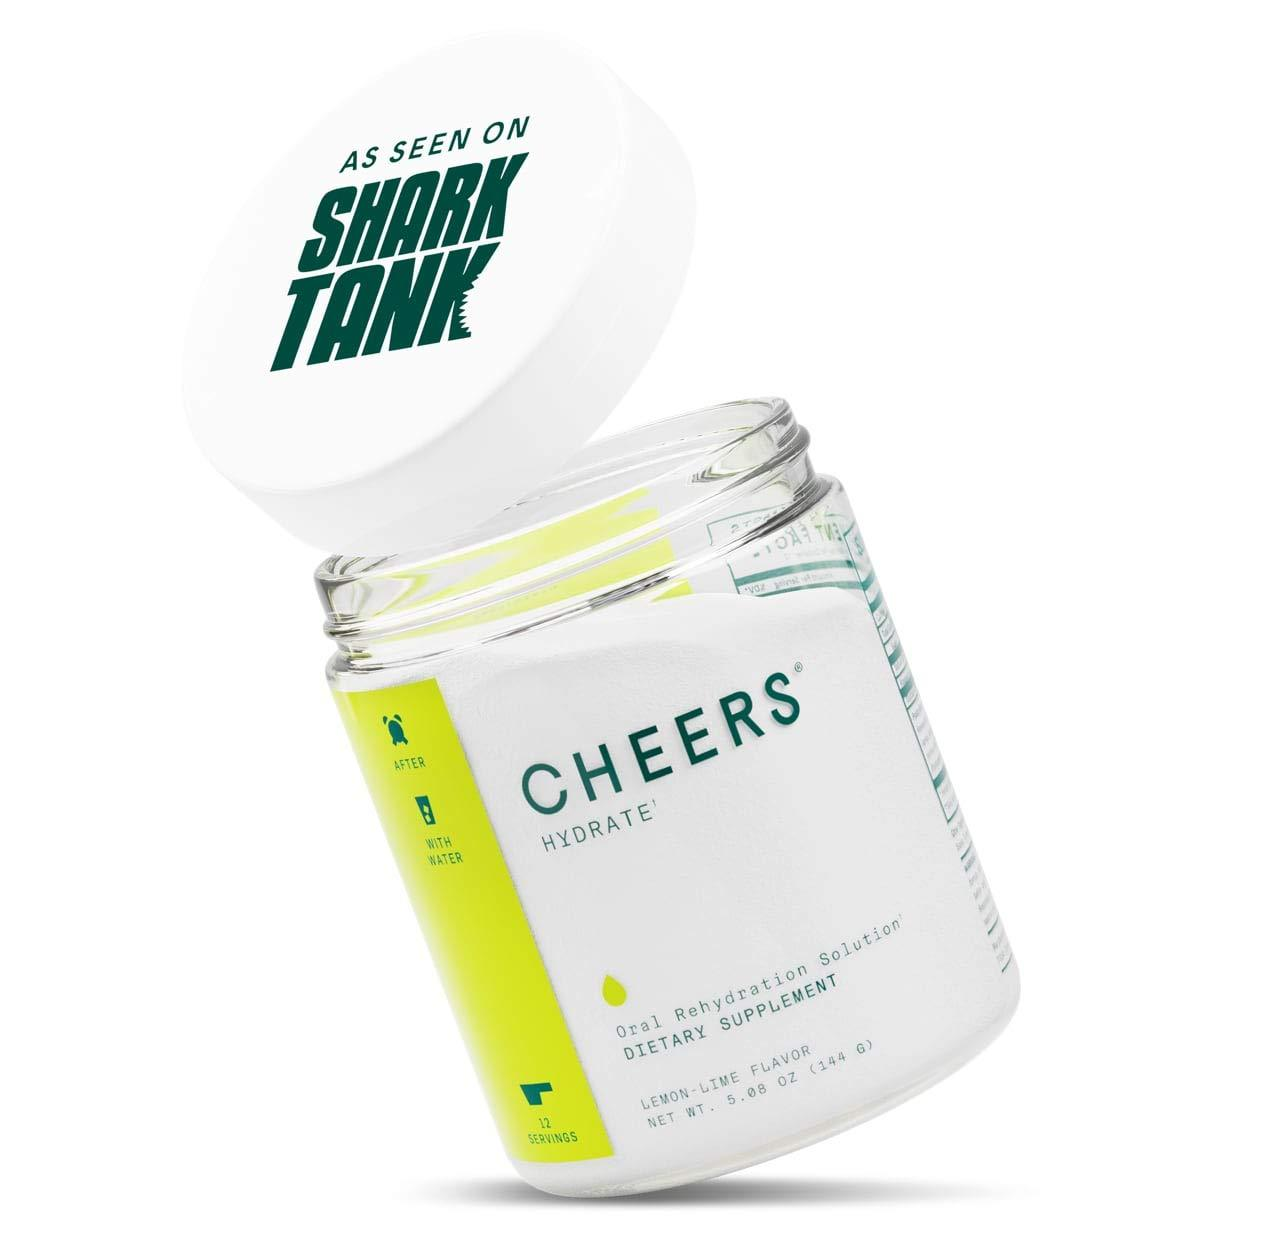 Cheers (Formerly Thrive+) ORS Electrolyte Powder- Electrolyte Supplement & Hydration Powder Hangover Prevention & Cure (12 Servings) - Hydration Electrolyte Supplement - Delicious Lemon/Lime Flavor 1